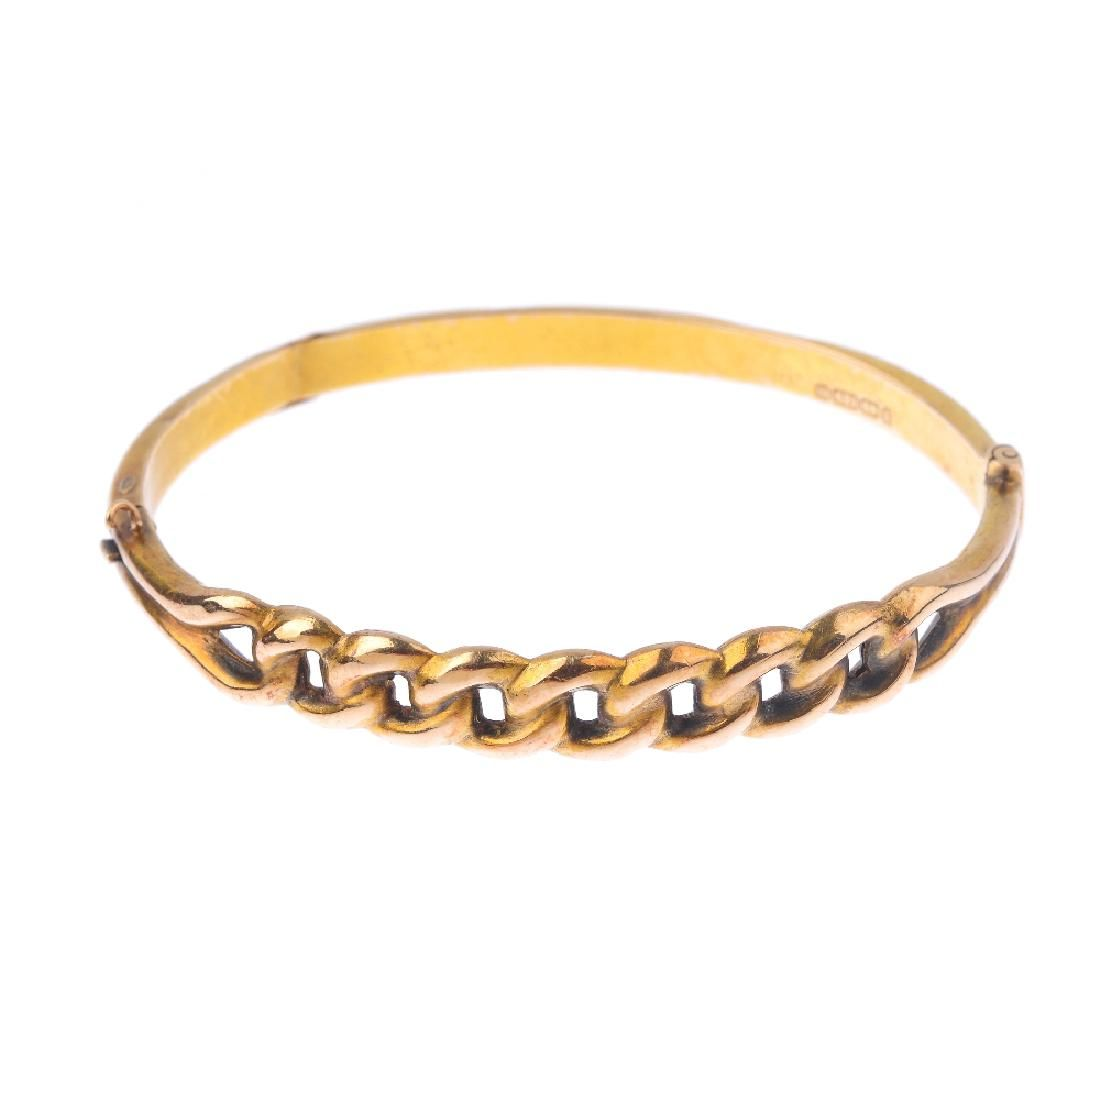 A late Victorian 15ct gold hinged bangle. Designed as a